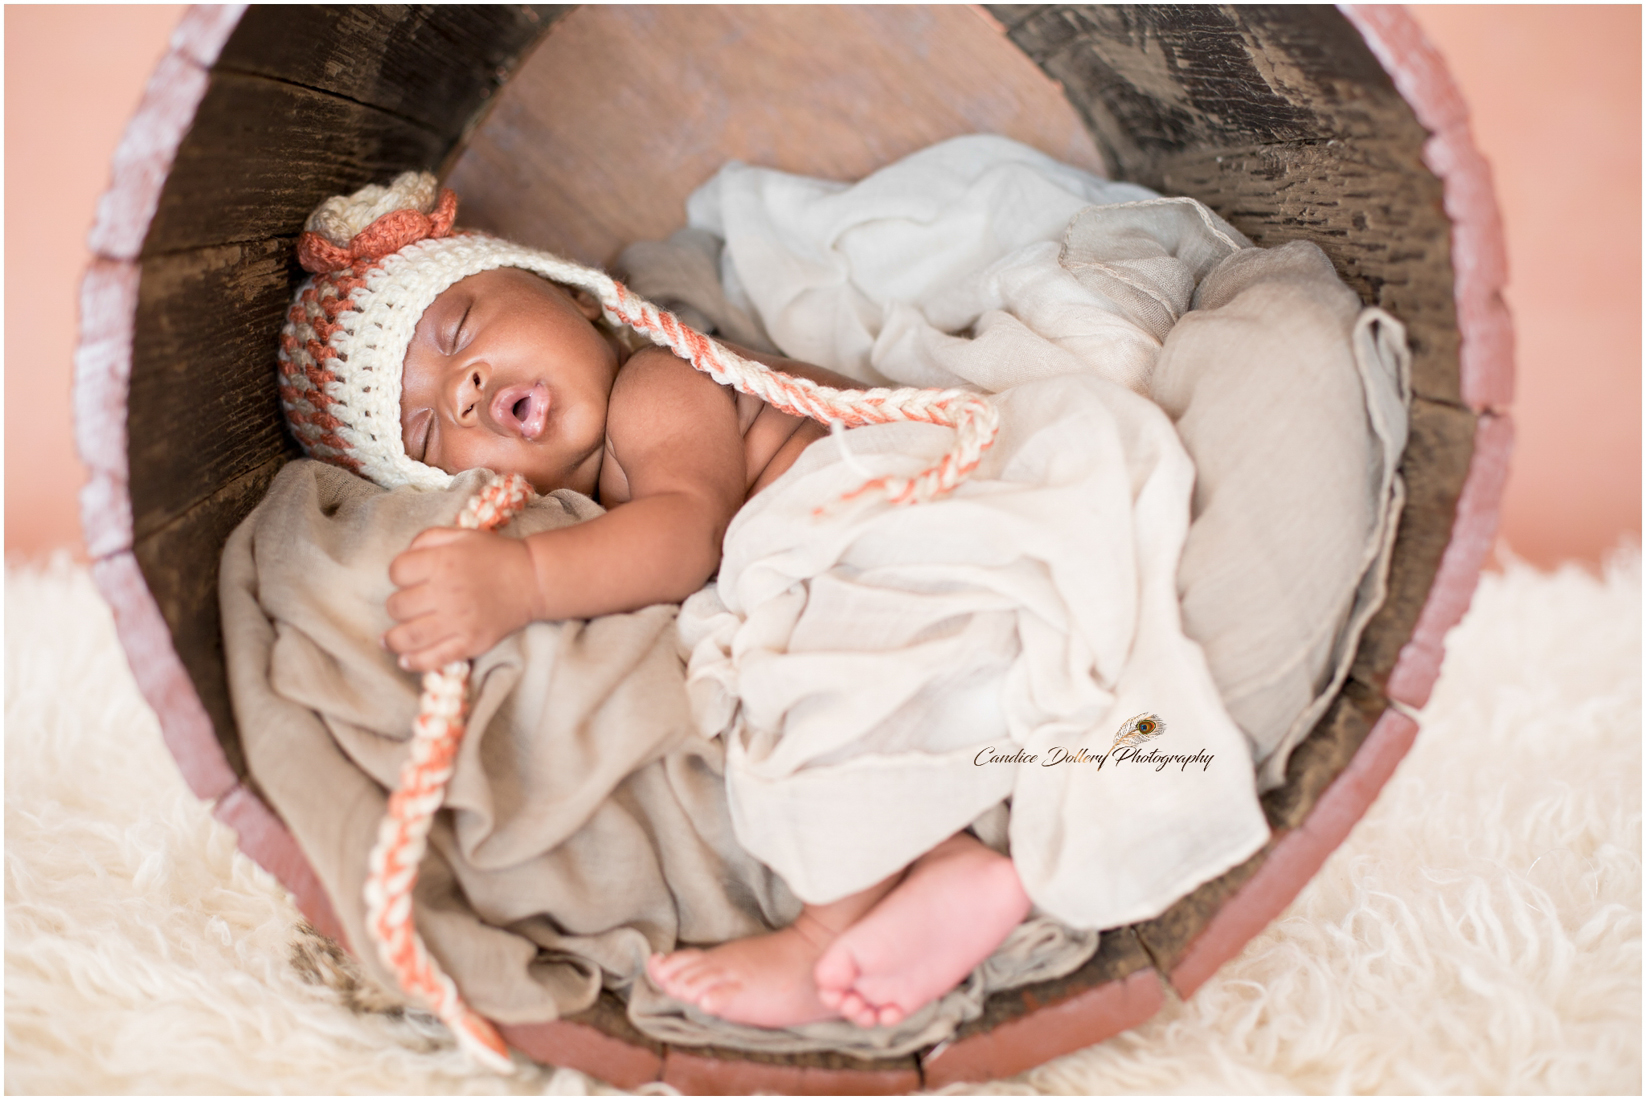 baby-iyana-candice-dollery-photography_2395a